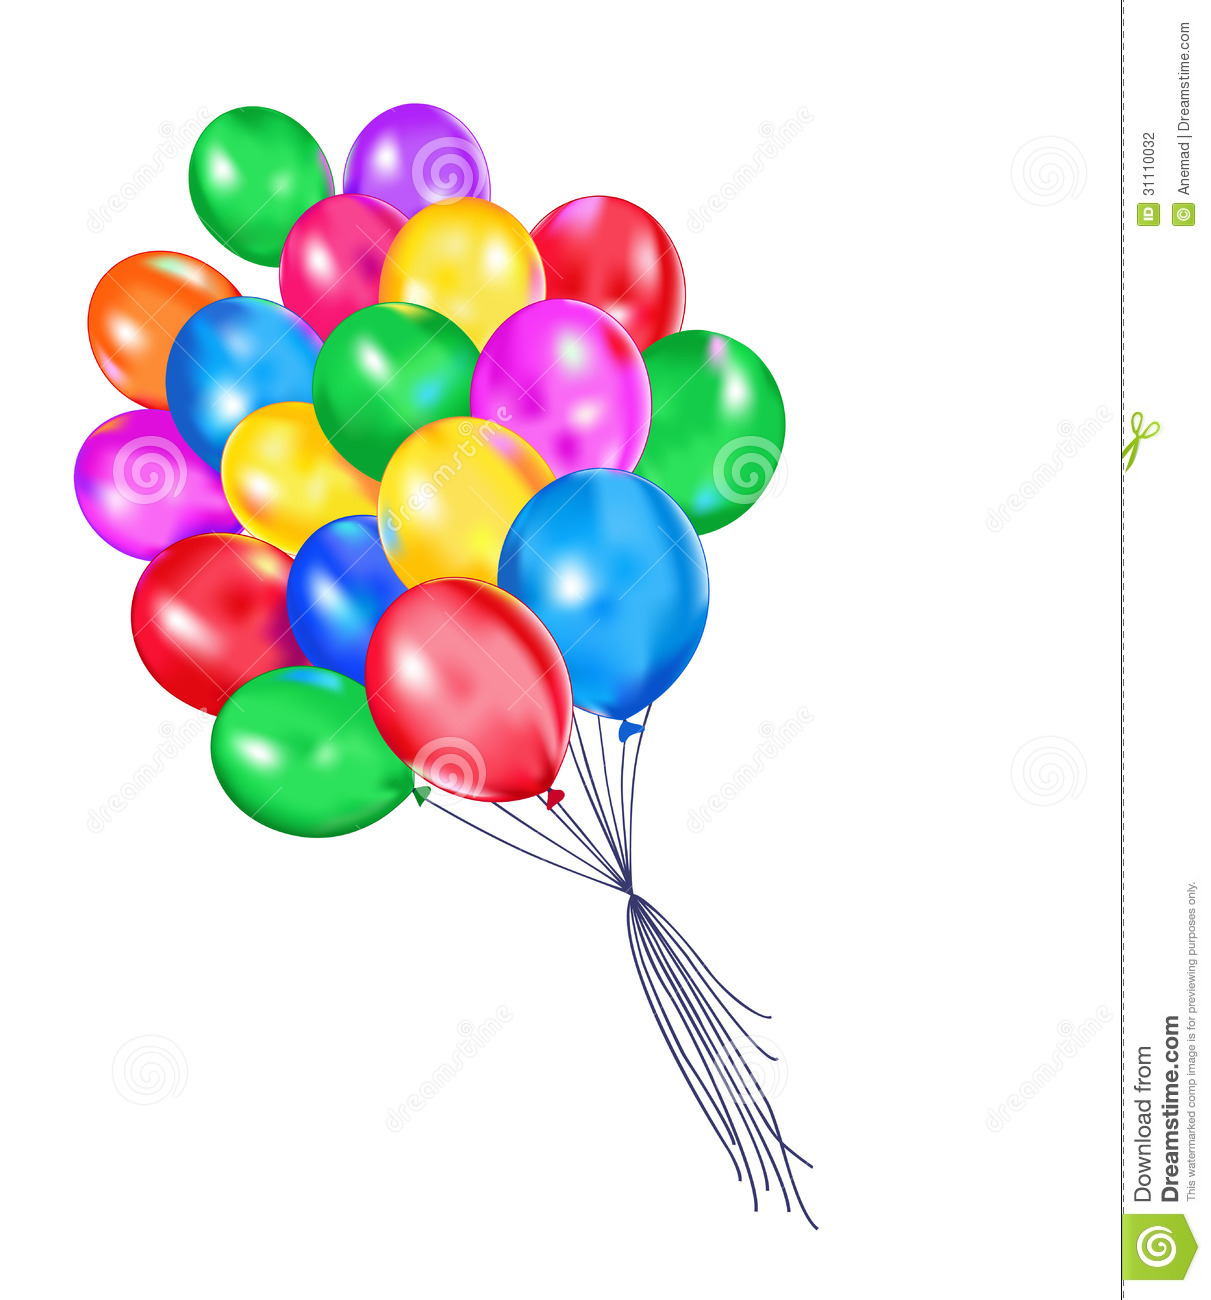 Multi-colored Balloons Stock Photography - Image: 31110032